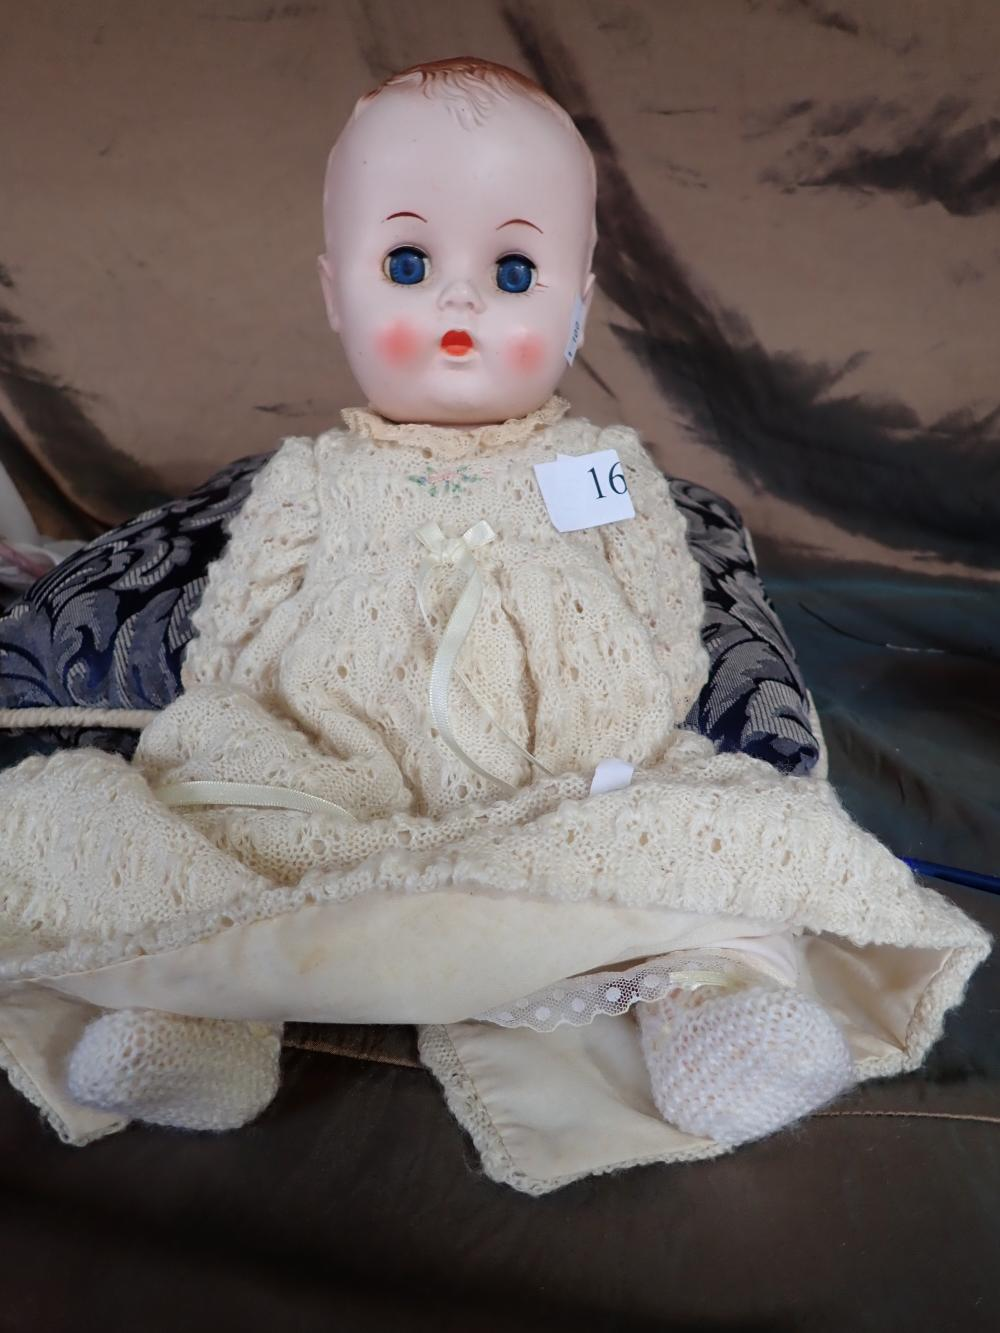 "VINTAGE RODDY HARD PLASTIC C. 1950 16"" DOLL, MADE IN ENGLAND - A FRACTURE TO LEFT LEG, BODY IN GOOD CONDITION FOR AGE, PETTICOAT, PANTS AND KNITTED DRESS"